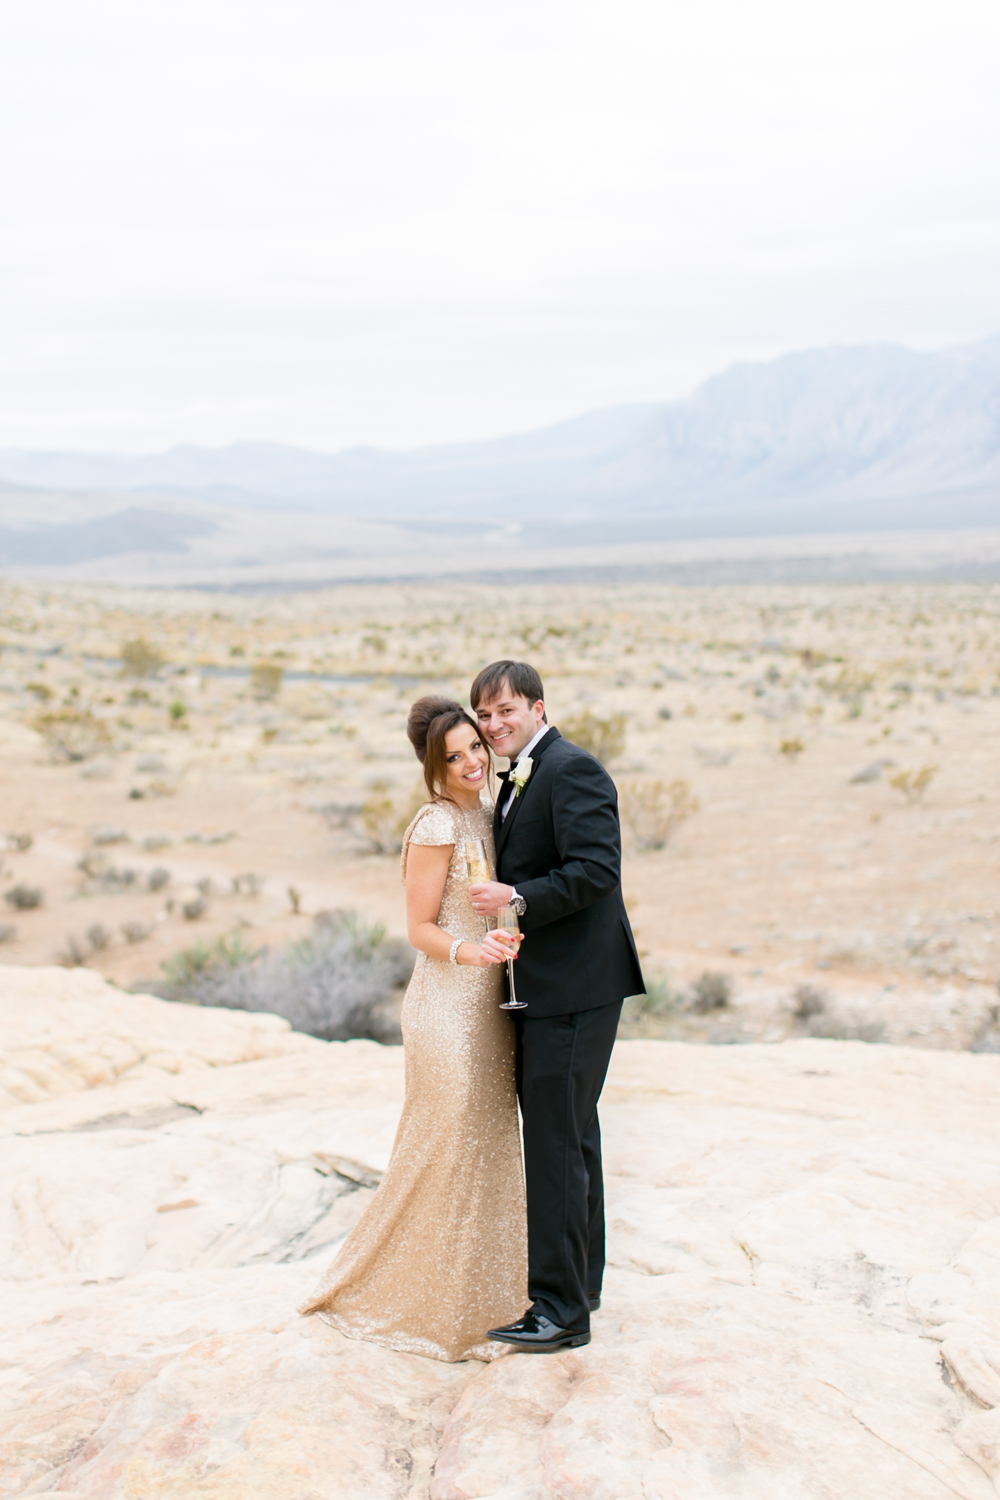 Red Rock Canyon-Las Vegas-Nevada-Elopement Photographer-LovisaPh